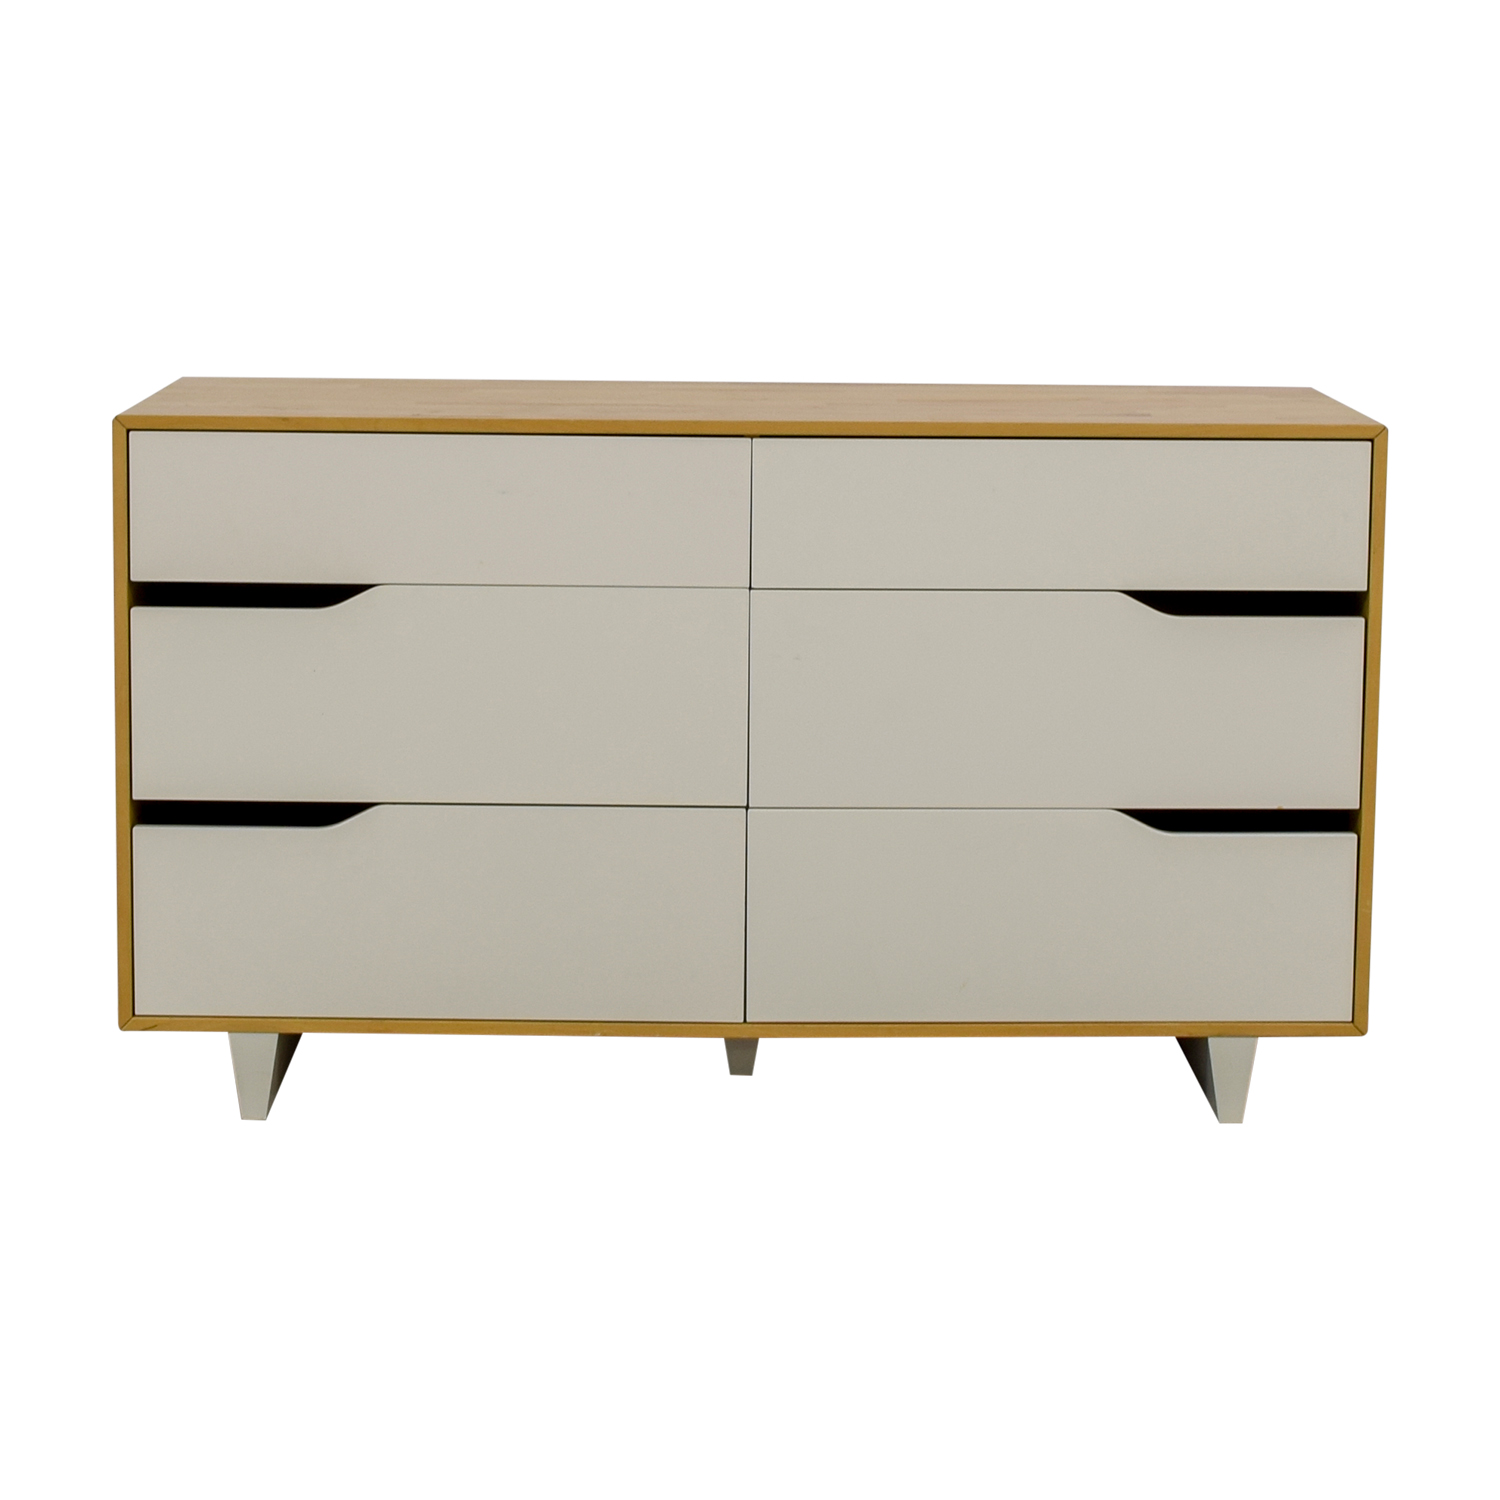 Ikea Mandal Frame 51 Off Ikea Ikea Mandal White And Natural Six Drawer Dresser Storage